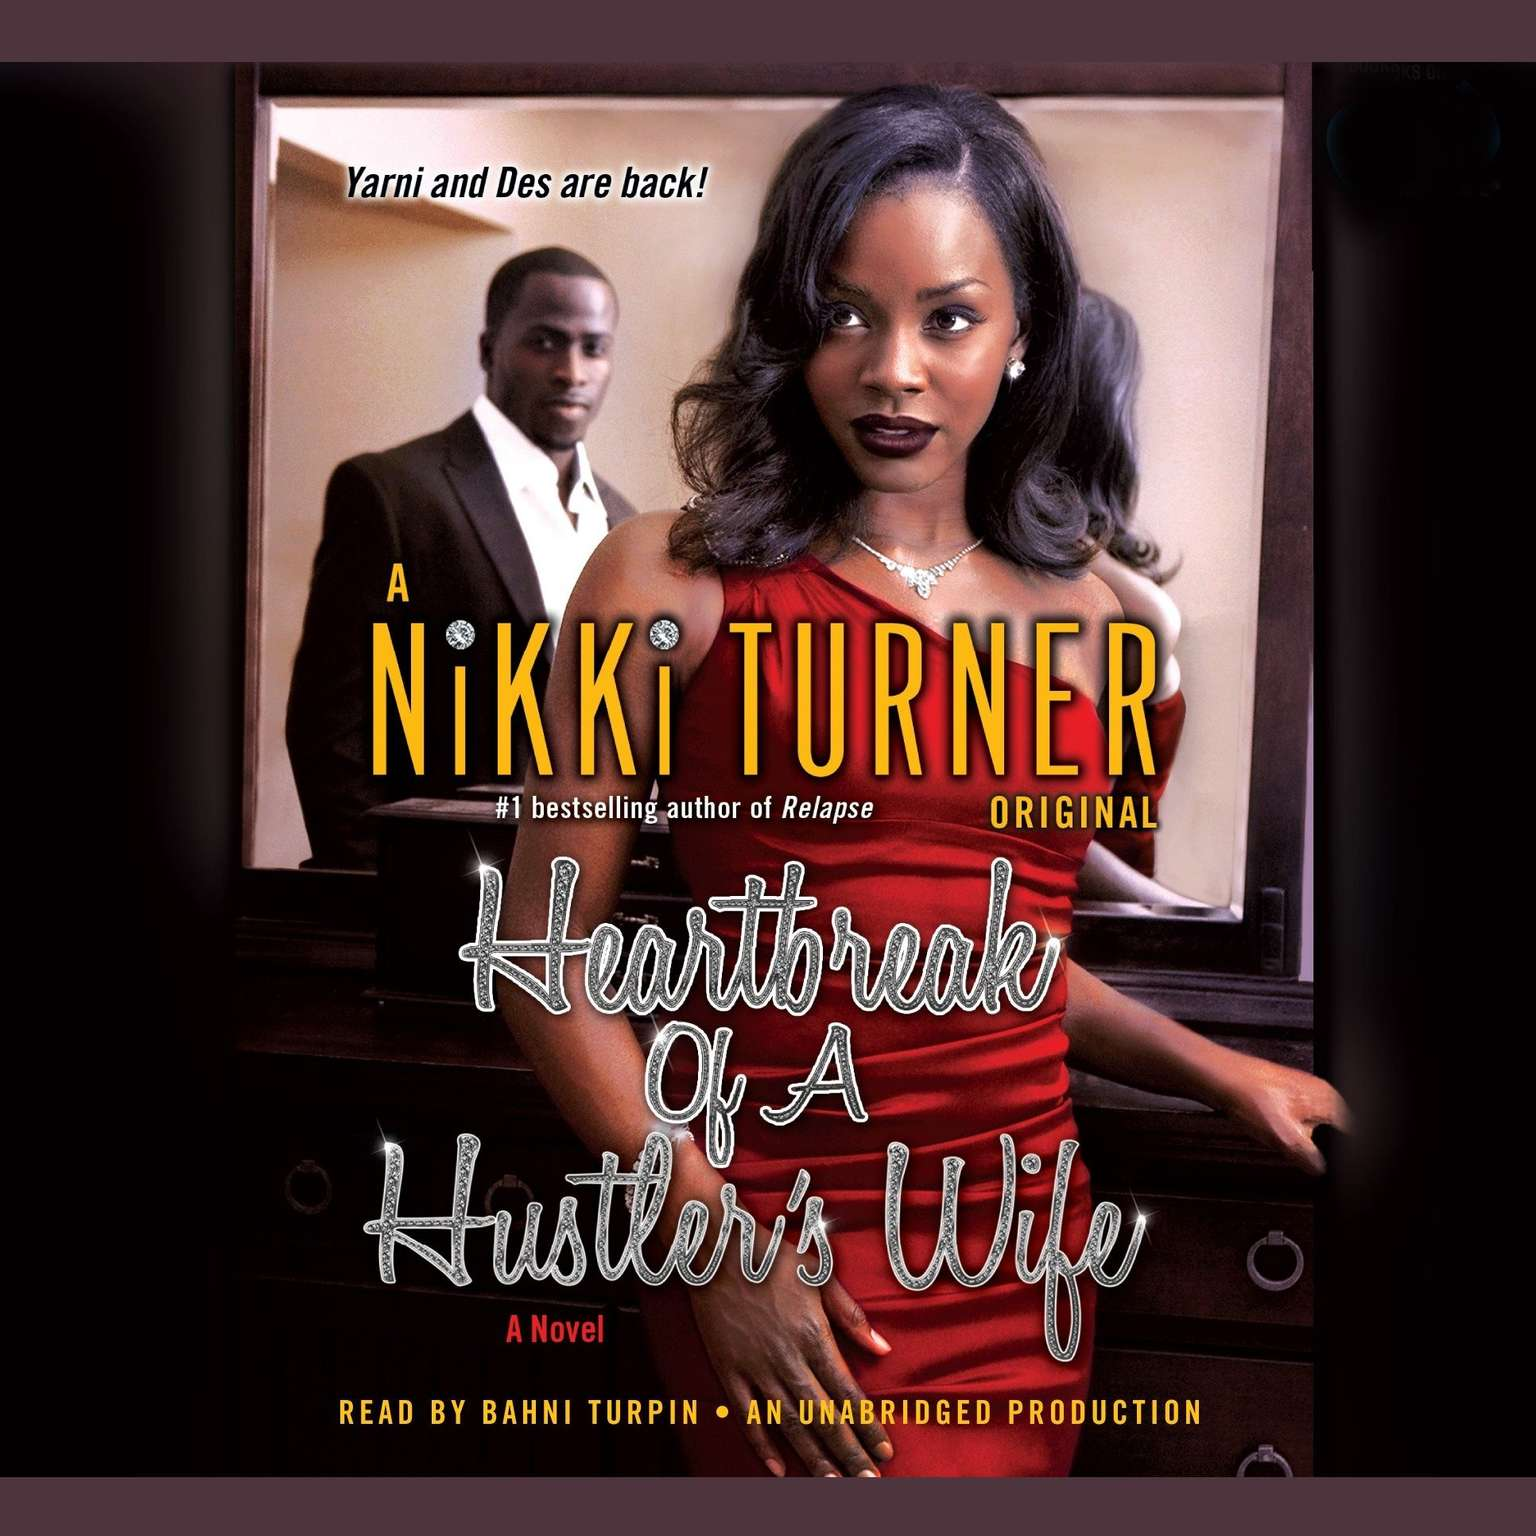 Printable Heartbreak of a Hustler's Wife: A Novel Audiobook Cover Art